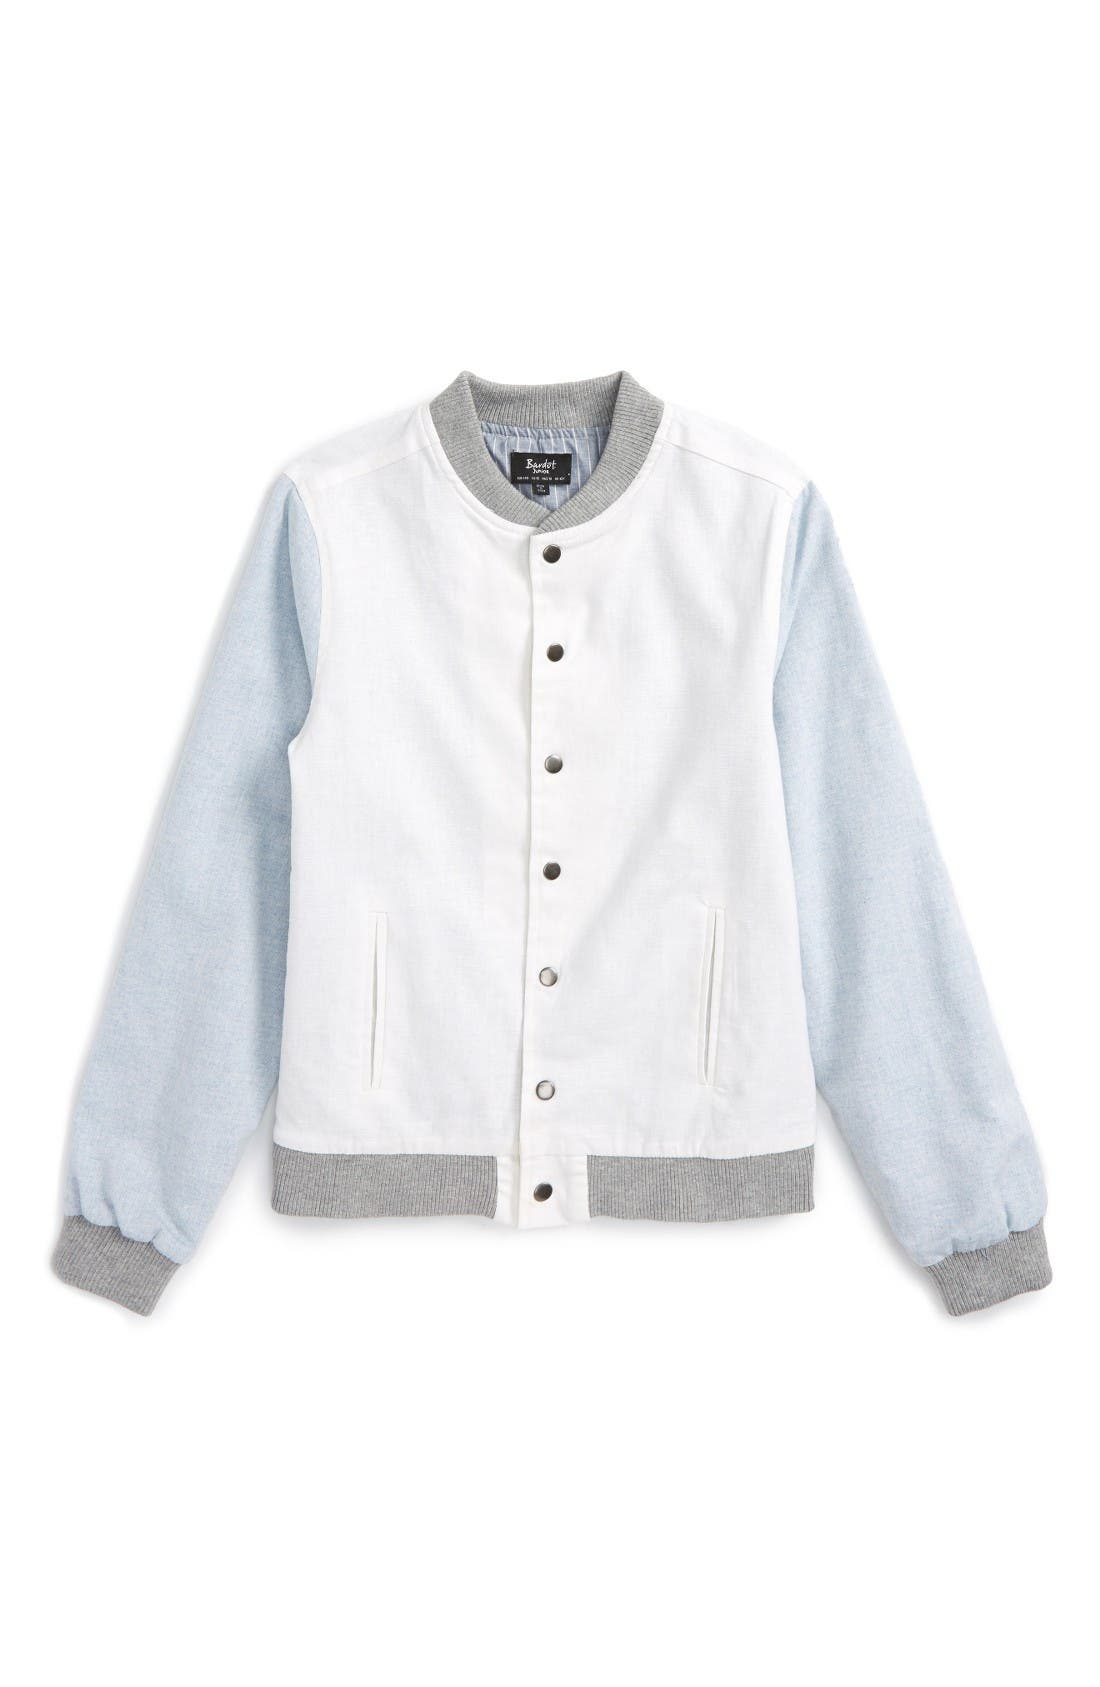 BARDOT JUNIOR Orlando Varsity Jacket